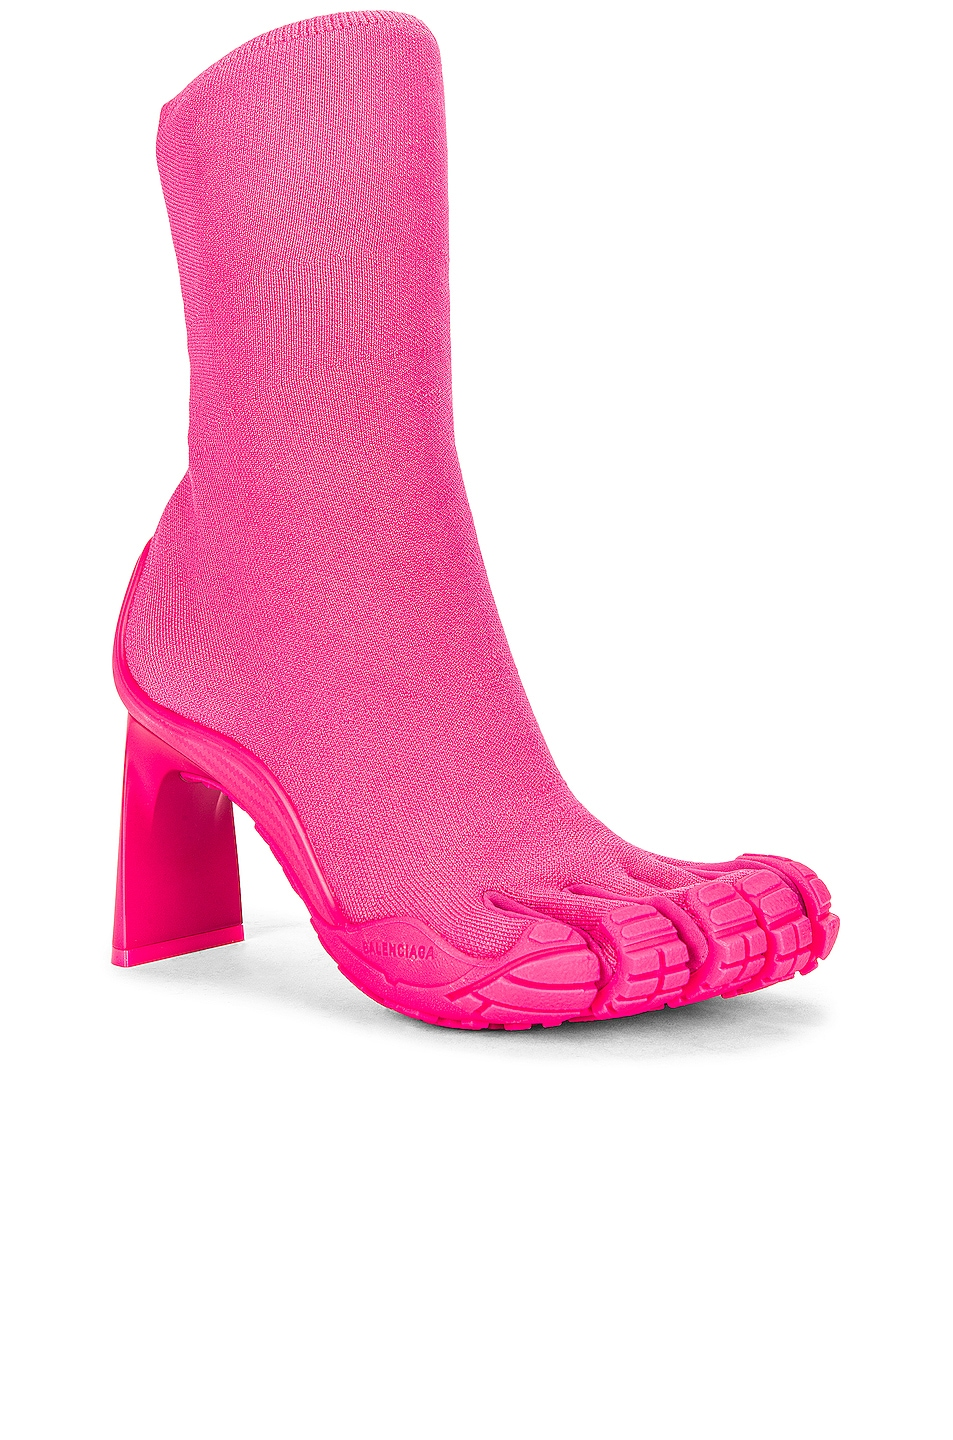 Image 1 of Balenciaga x Vibram Five Fingers High Toe Ankle Boots in Fluo Pink